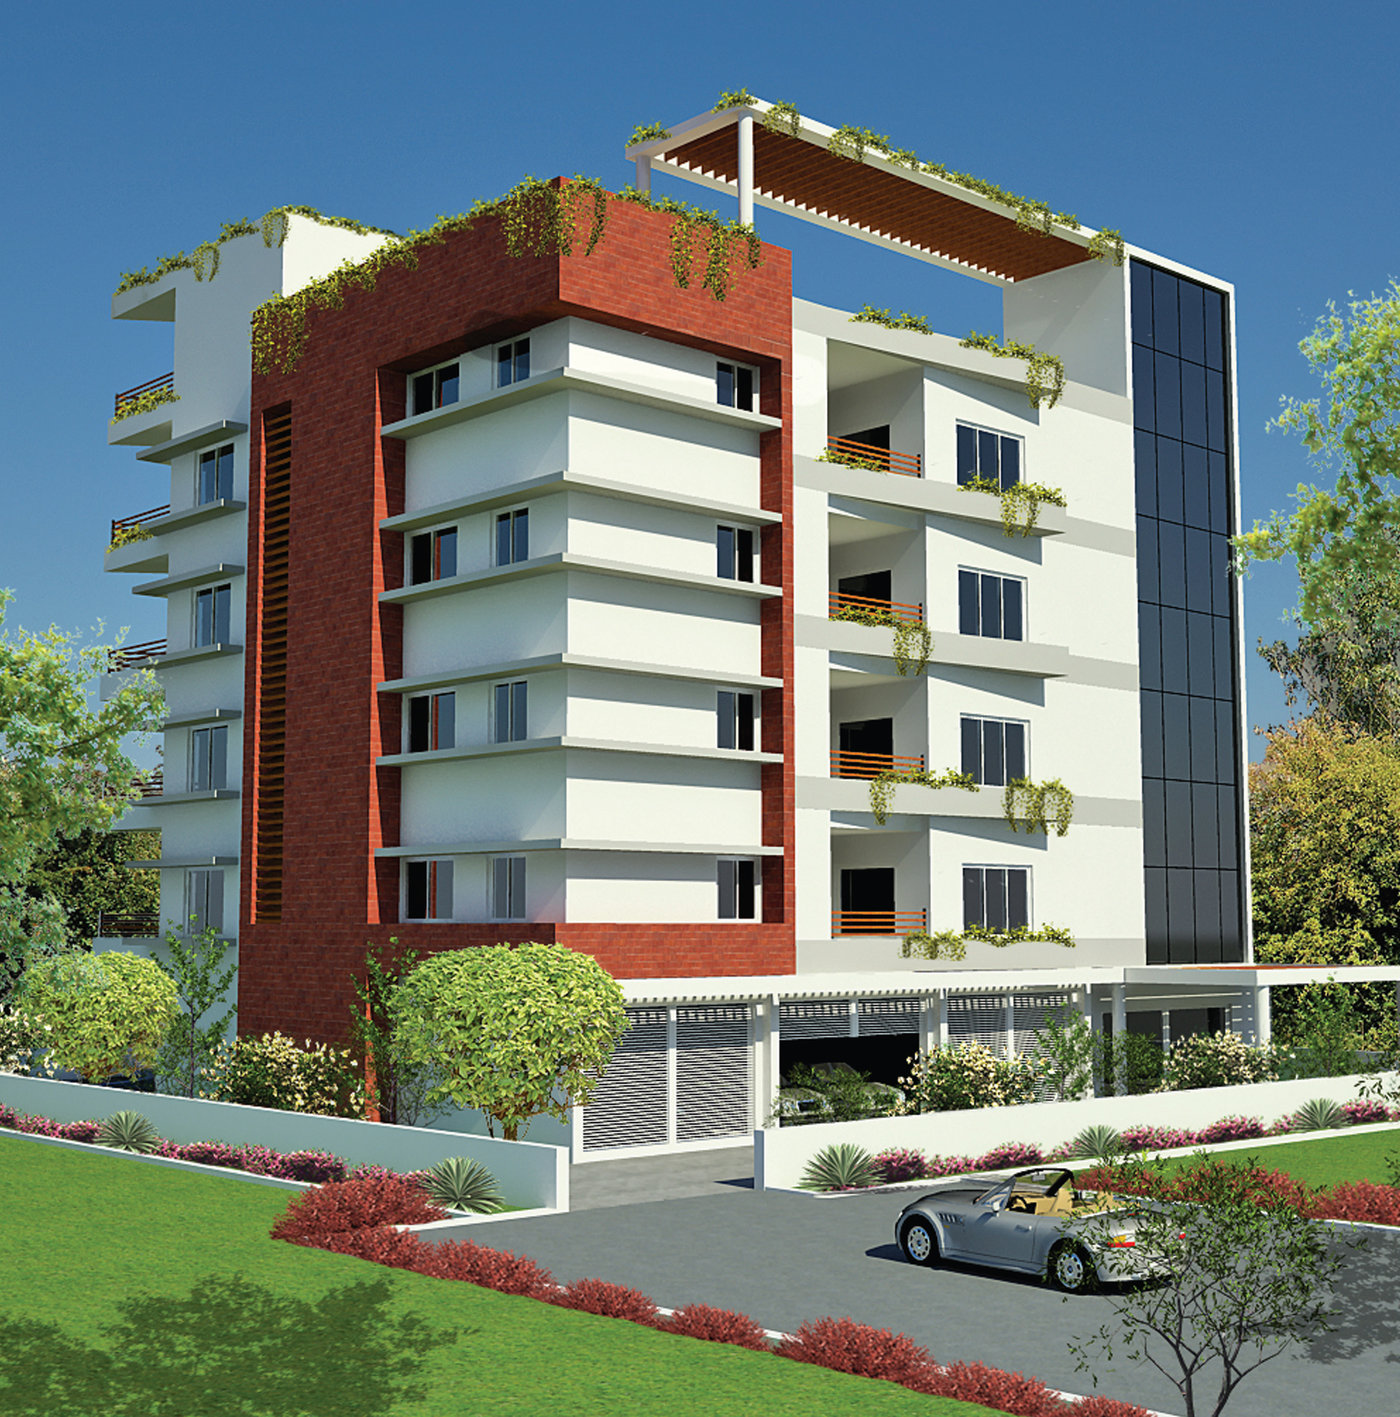 Commercial Buildings By Dheeraj Mohan At Coroflot.com